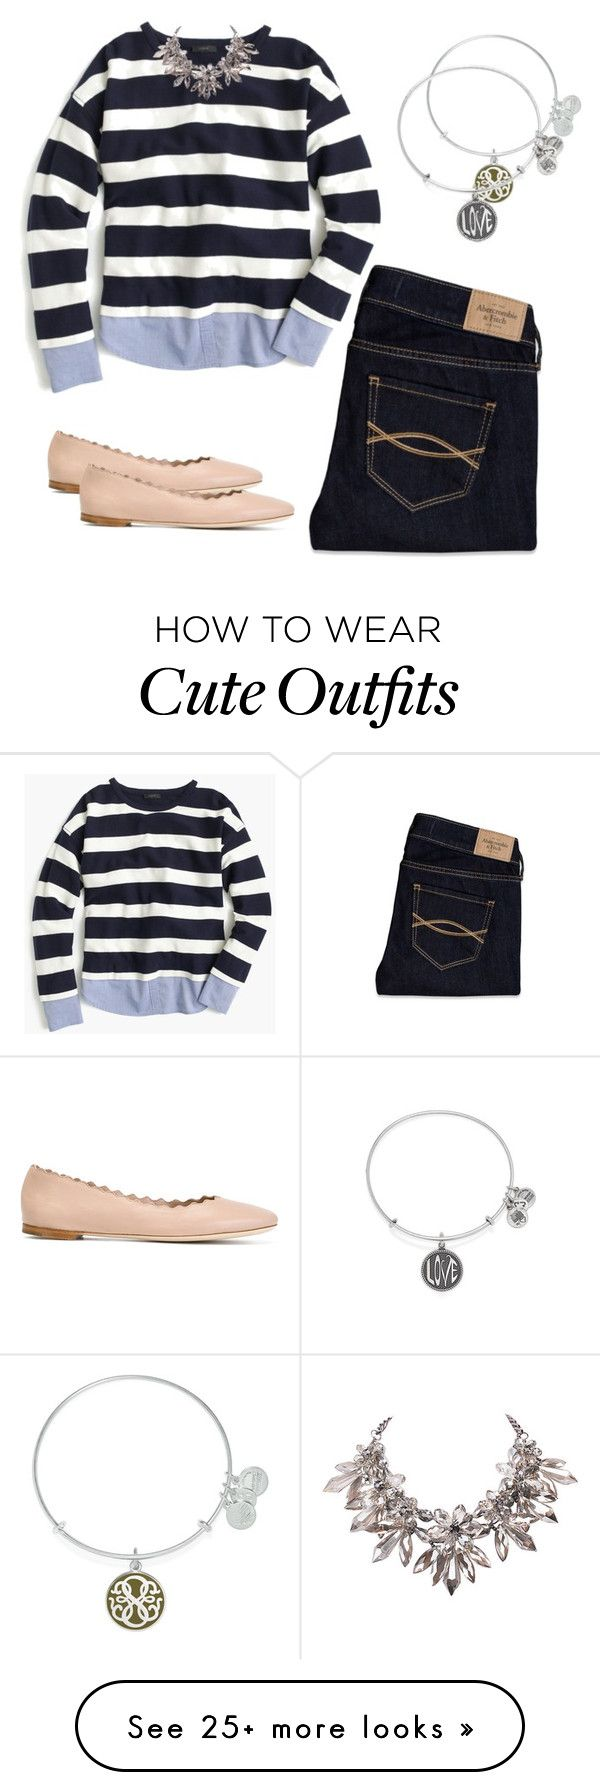 """cute school outfit"" by pinkmuna on Polyvore featuring Abercrombie & Fitch, J.Crew, Alex and Ani and Chloé"